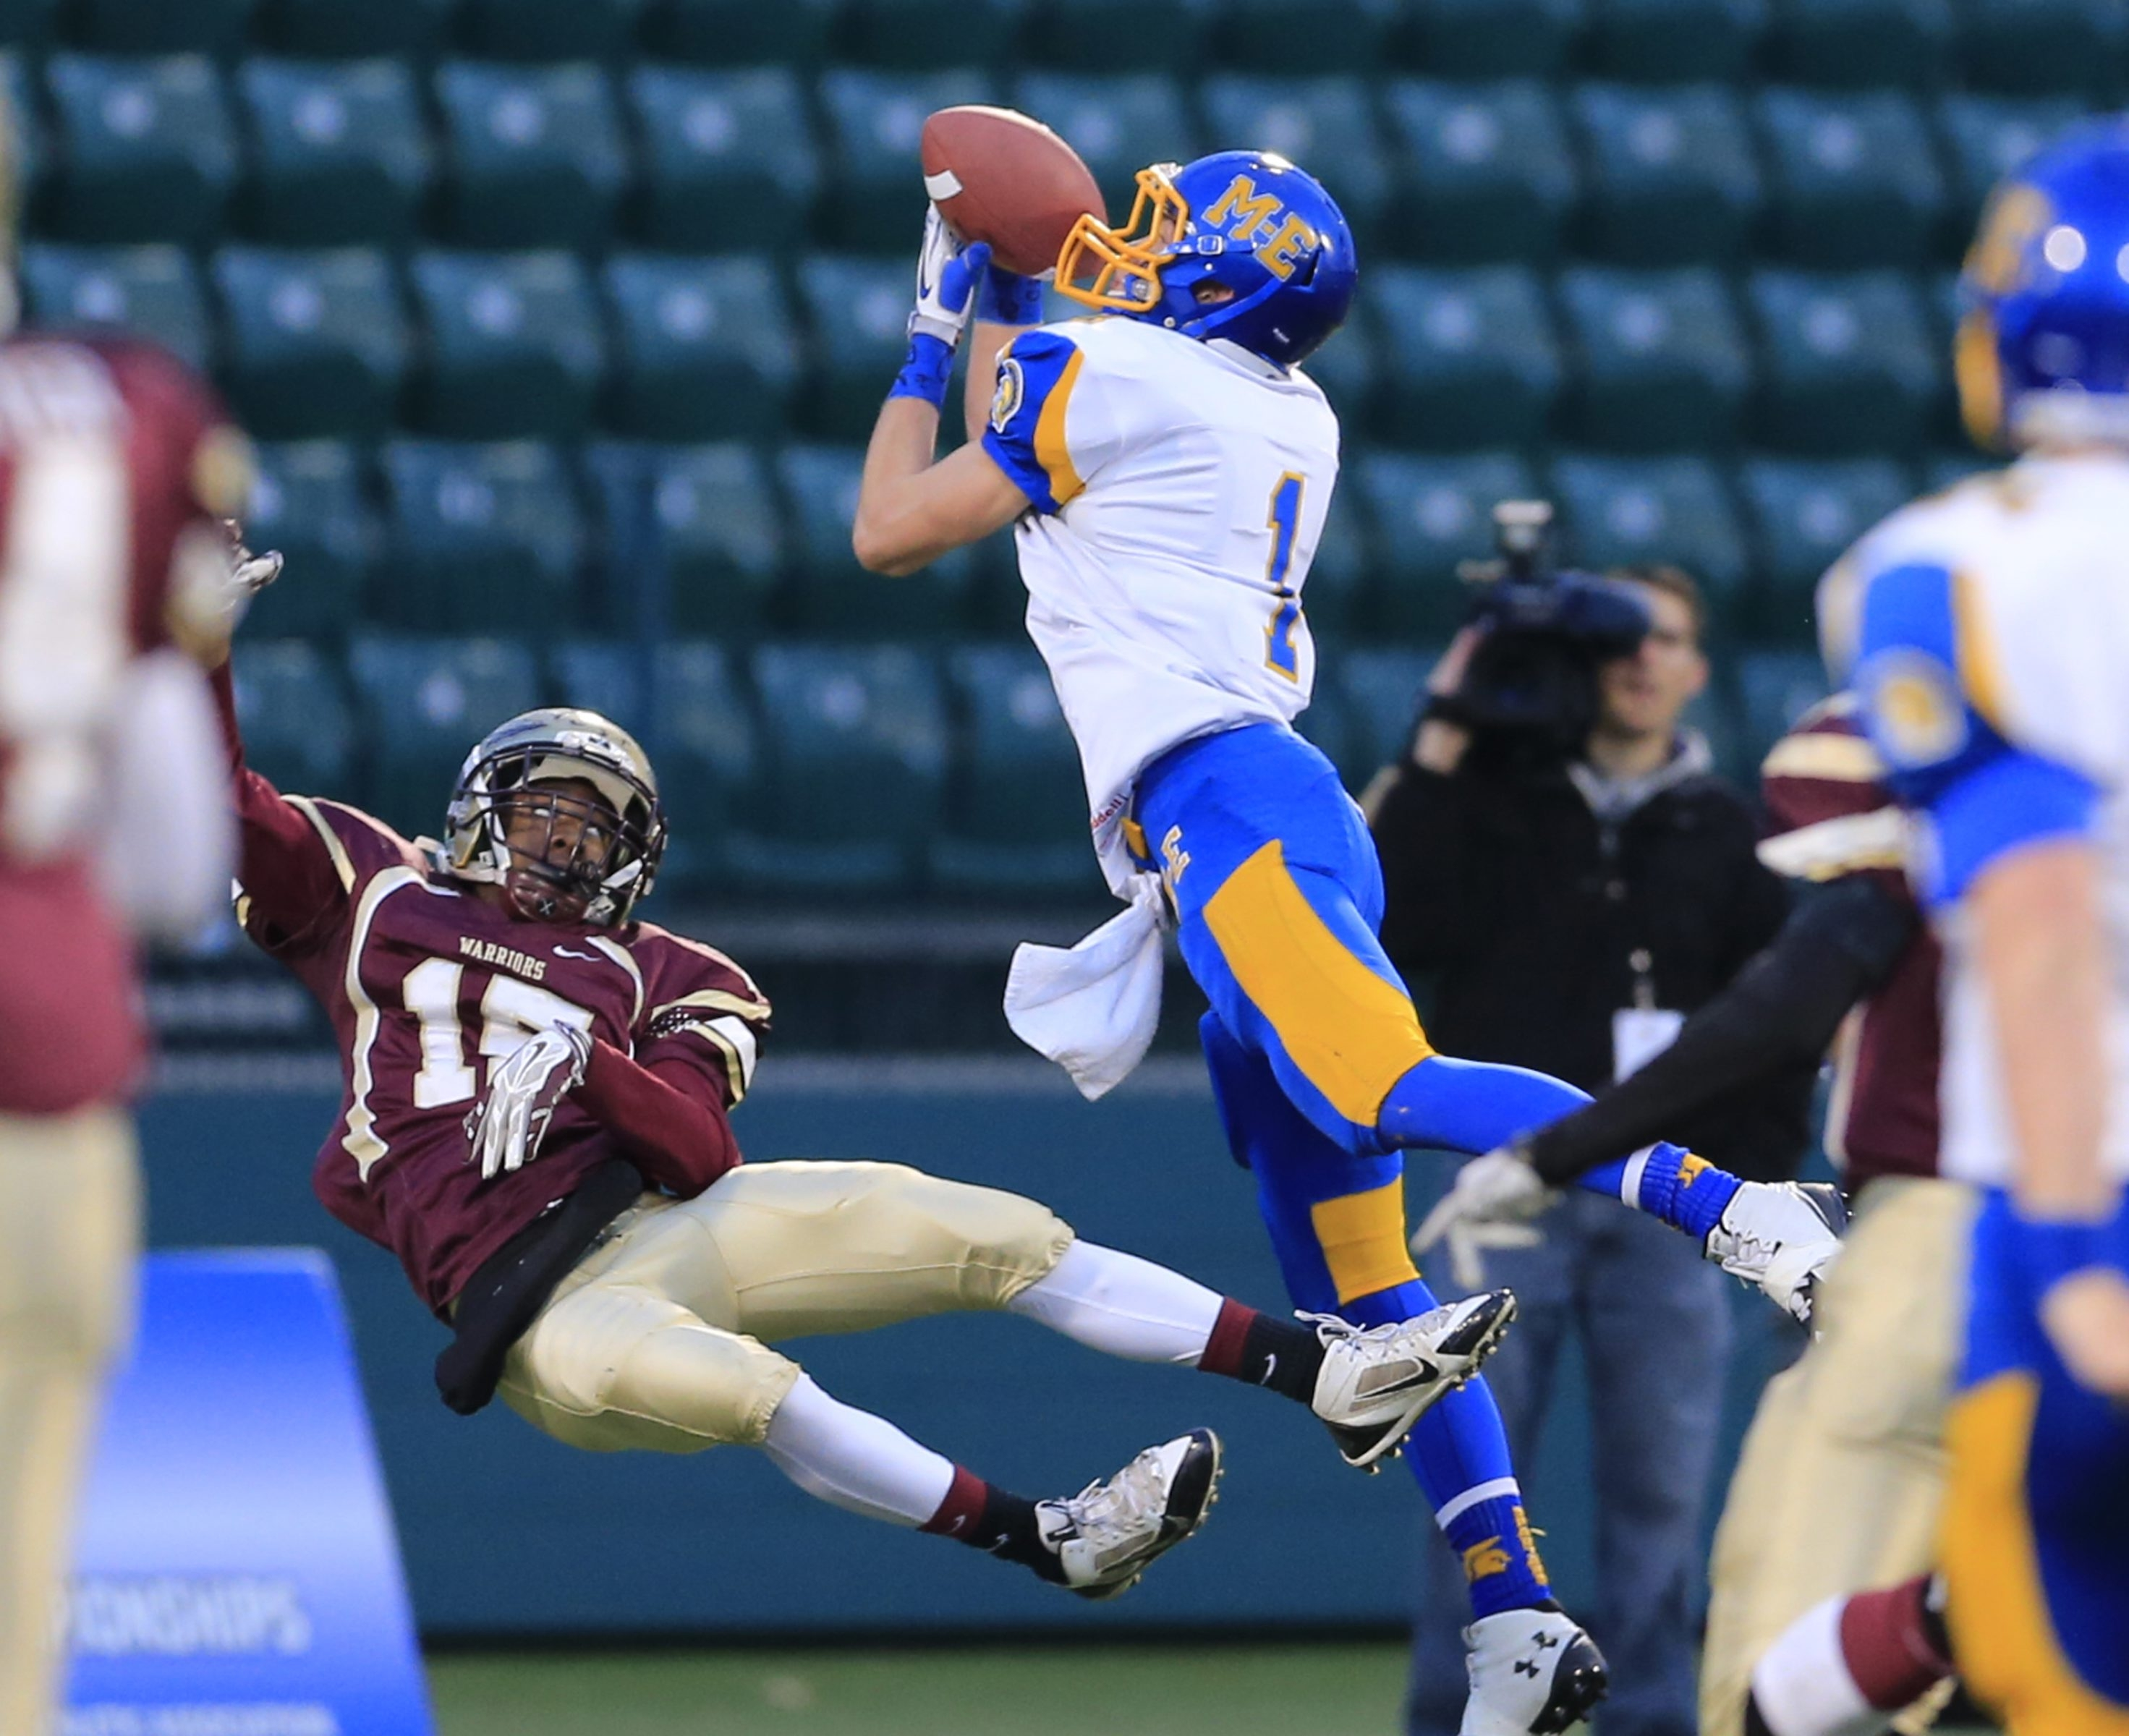 Cheektowaga's Christian Bogle loses his balance as Maine-Endwell's Mike Palmer makes a touchdown catch Sunday.